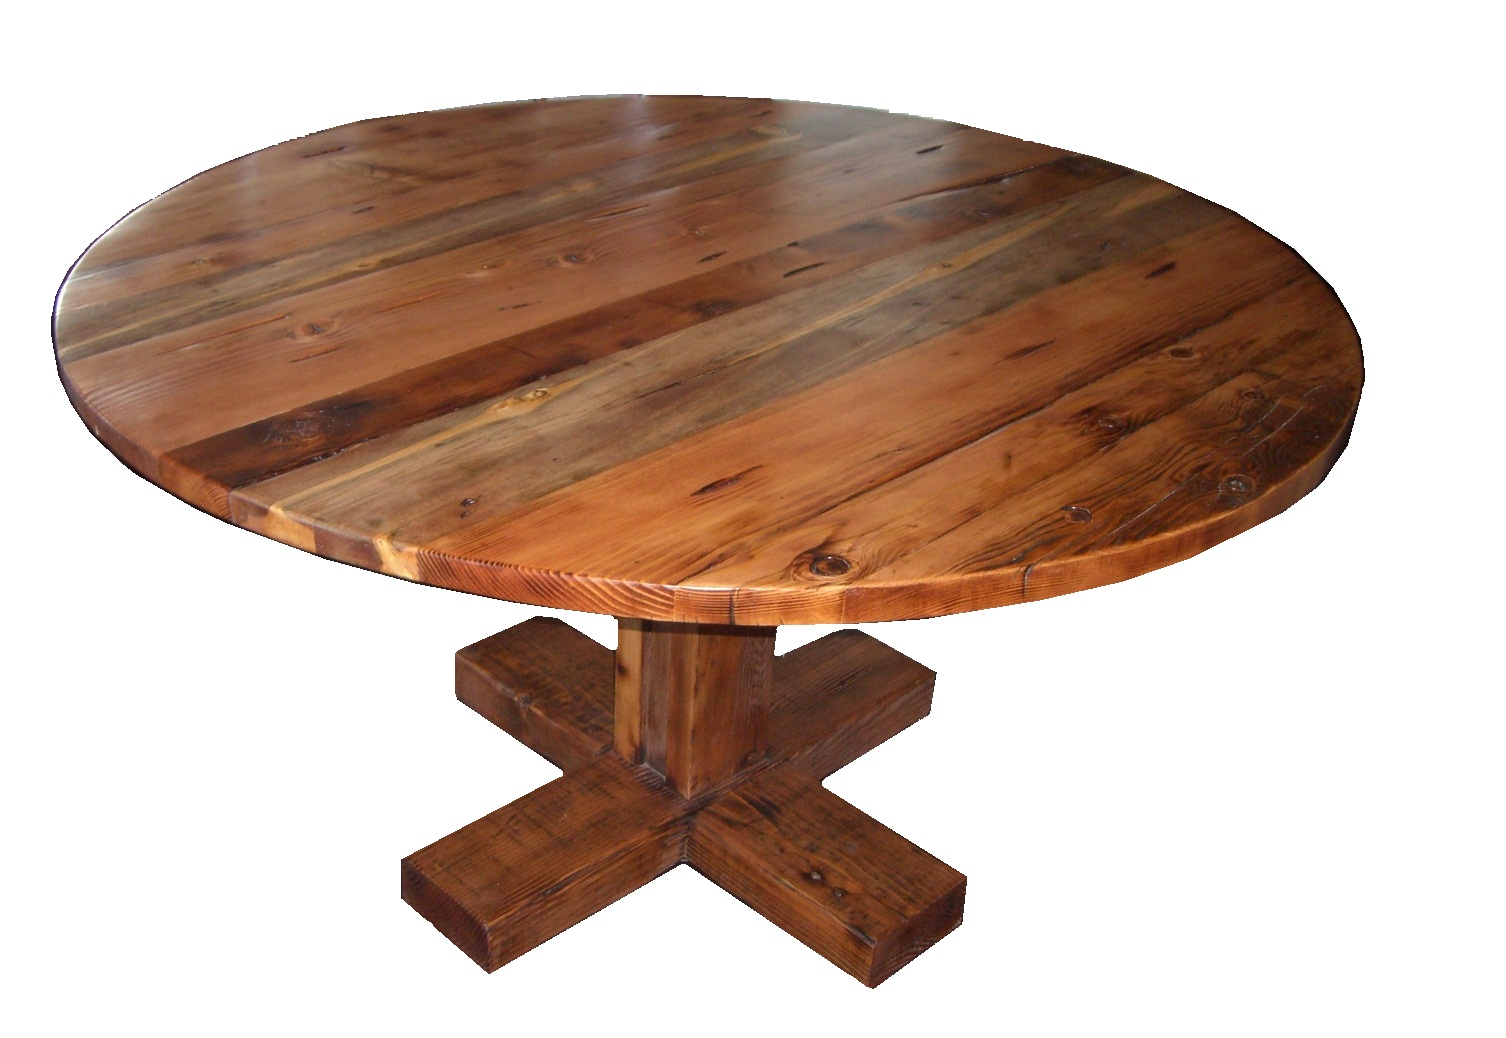 rustic round dining room tables have open